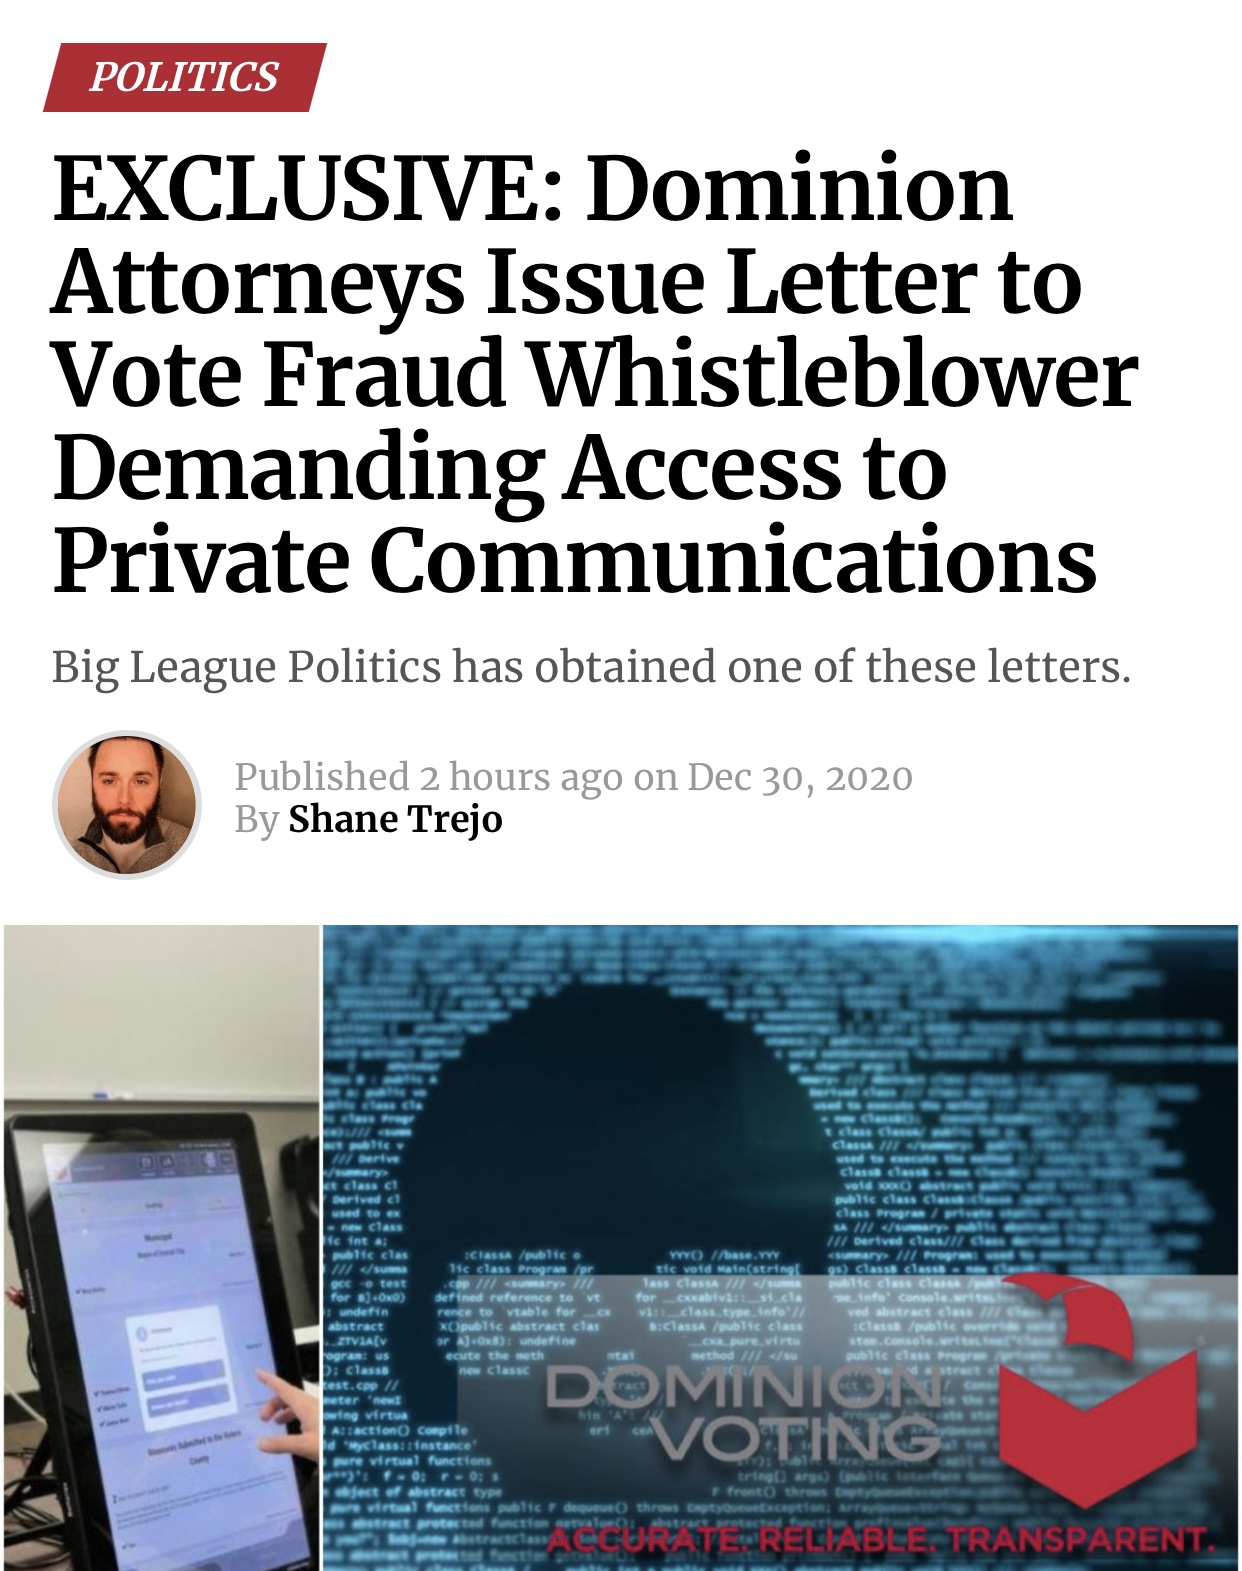 POLITICSEXCLUSIVE: Dominion Attorneys Issue Letter to Vote Fraud Whistleblower Demanding Access to Private Communications